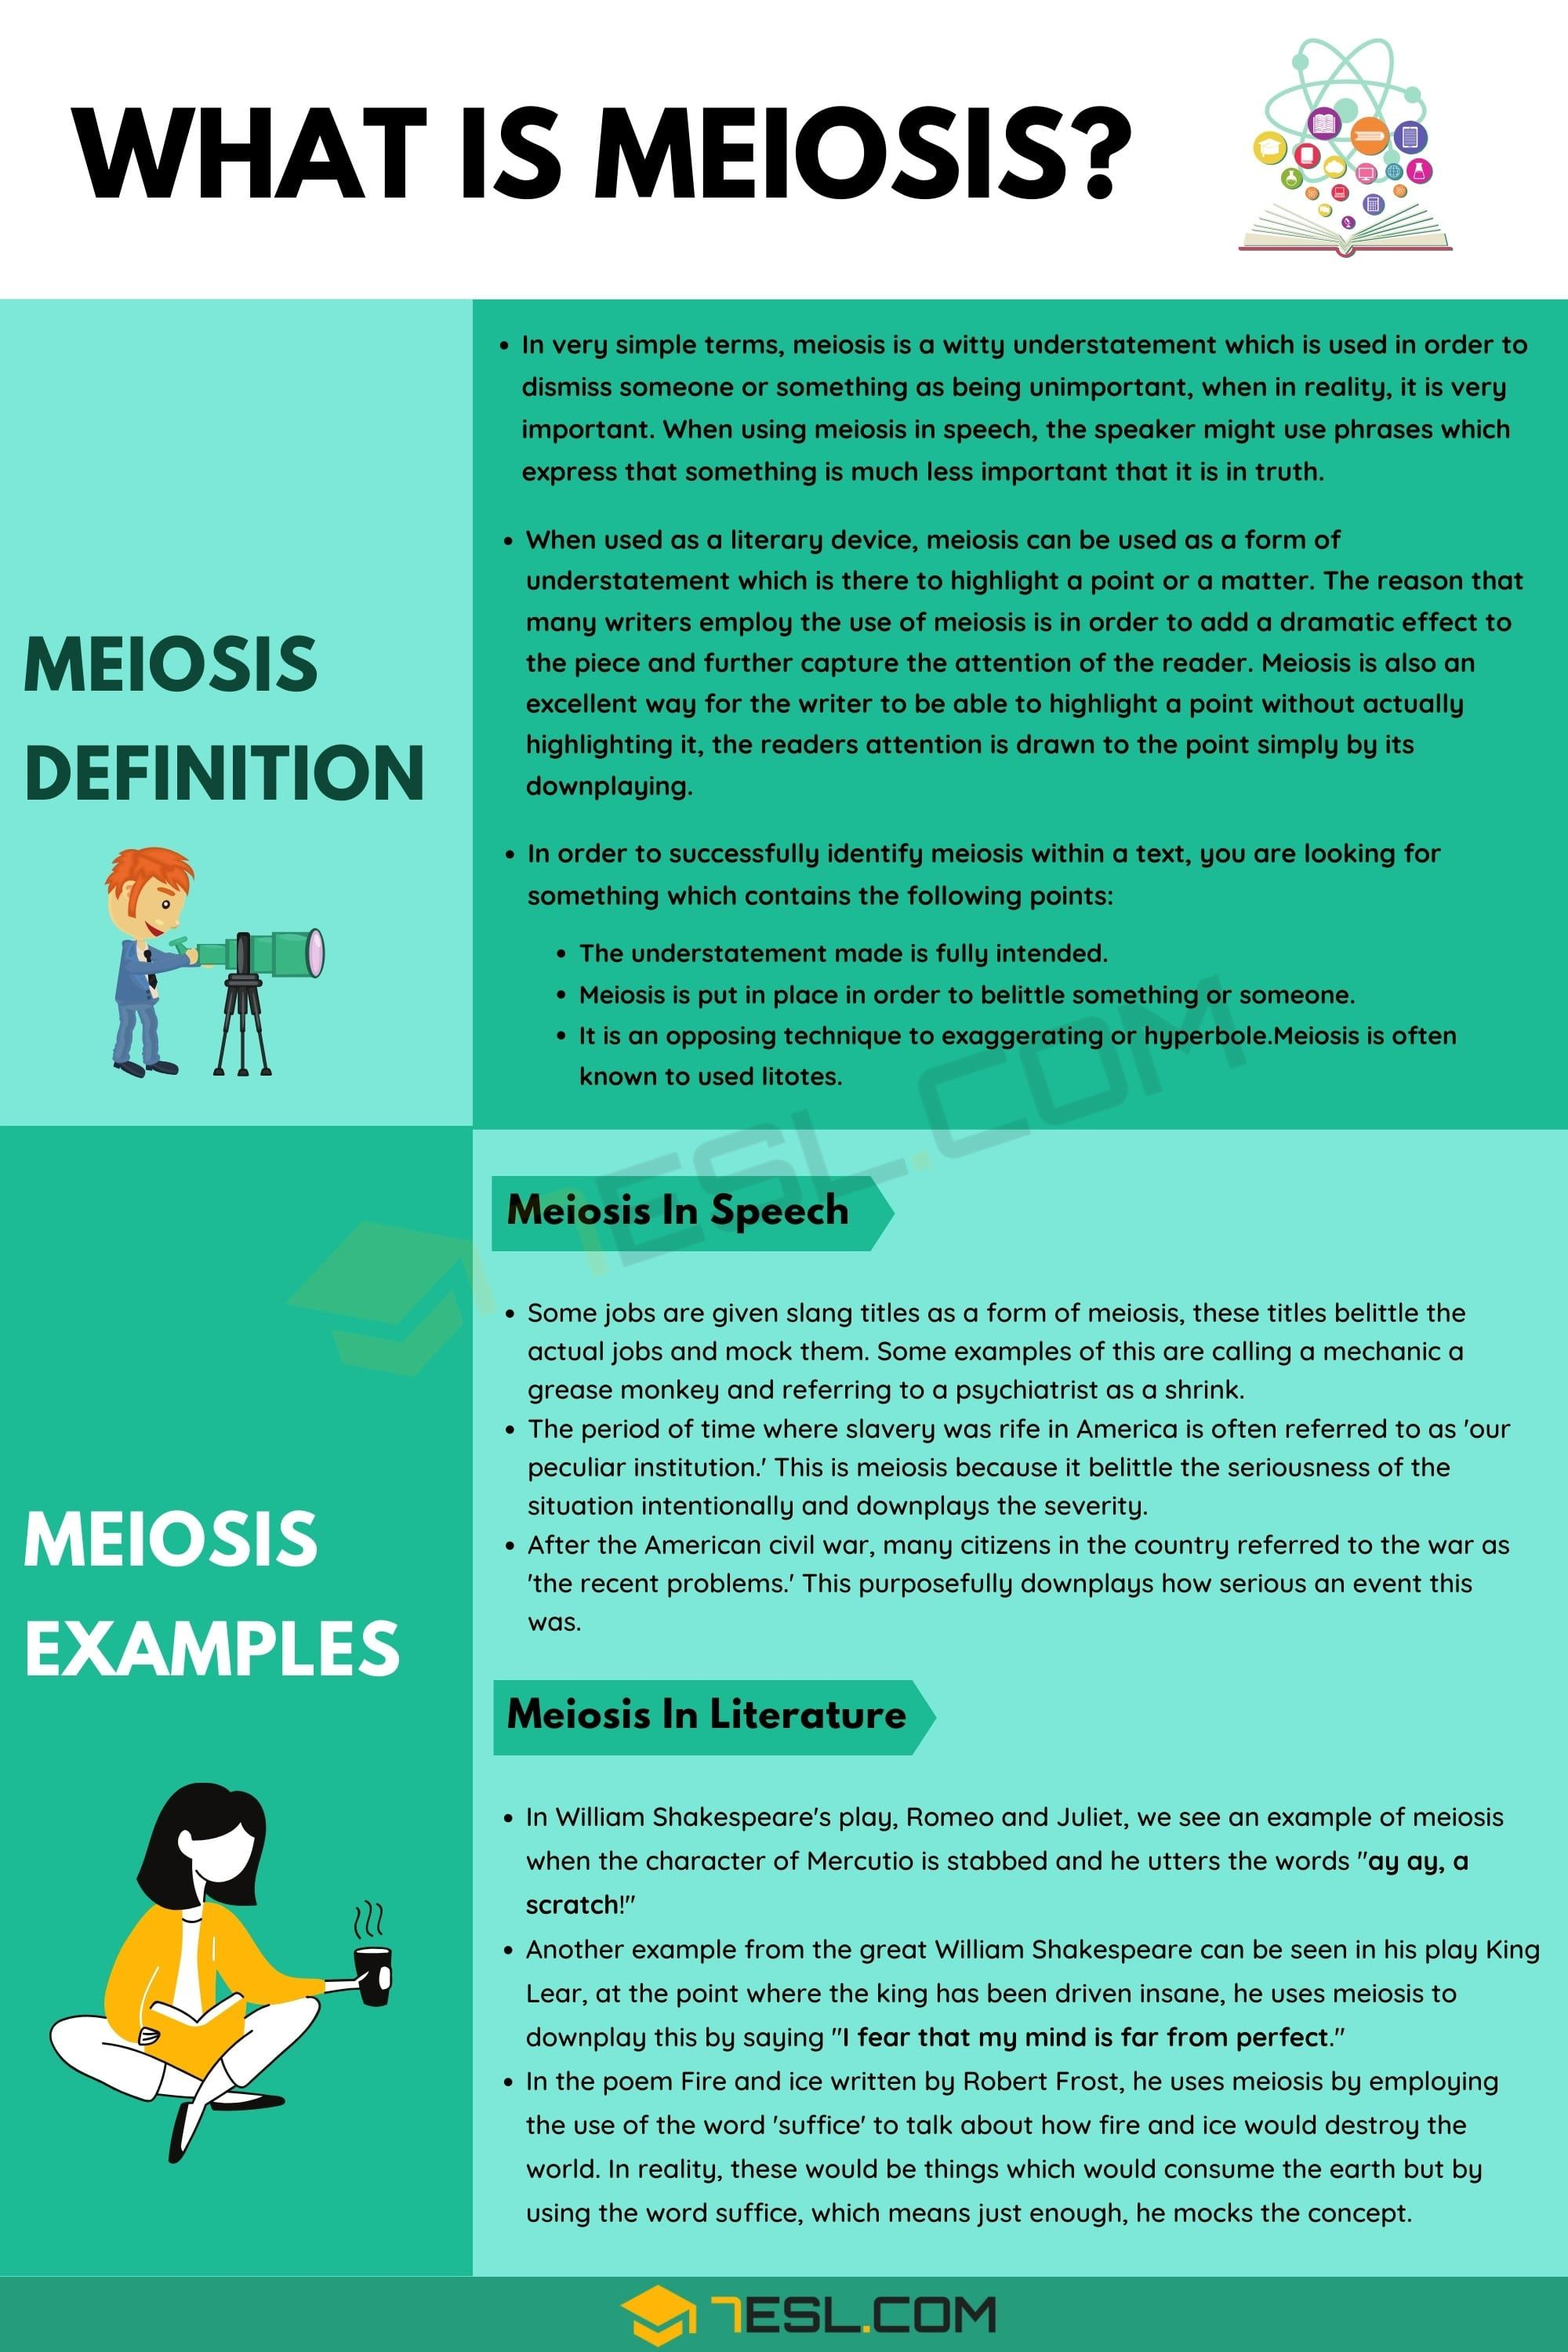 Meiosis Definition And Examples Of Meiosis In Speech And